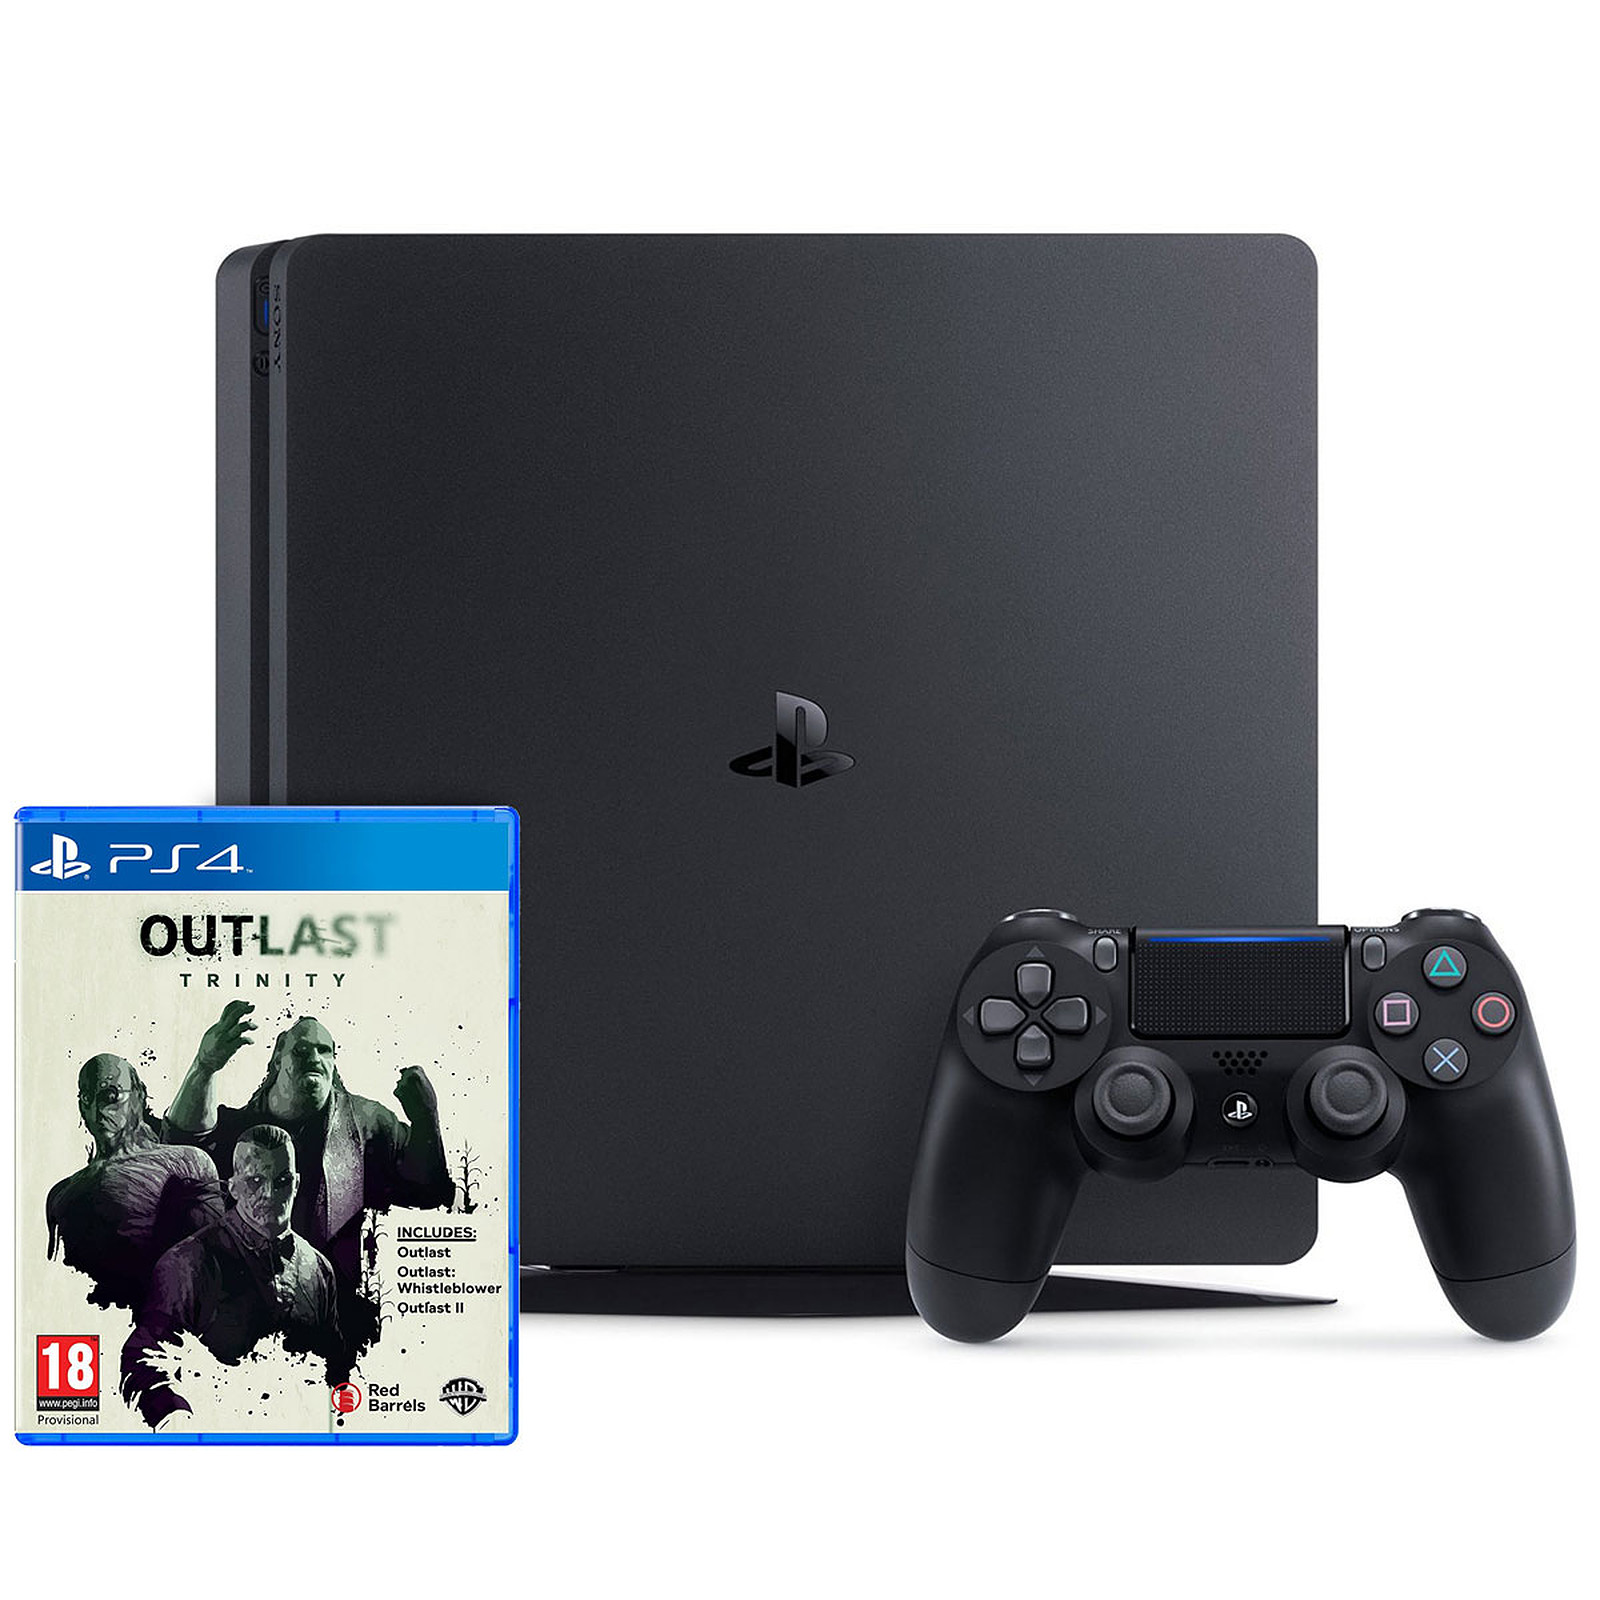 Sony Playstation 4 Slim 500 Go Outlast Trinity Console Ps4